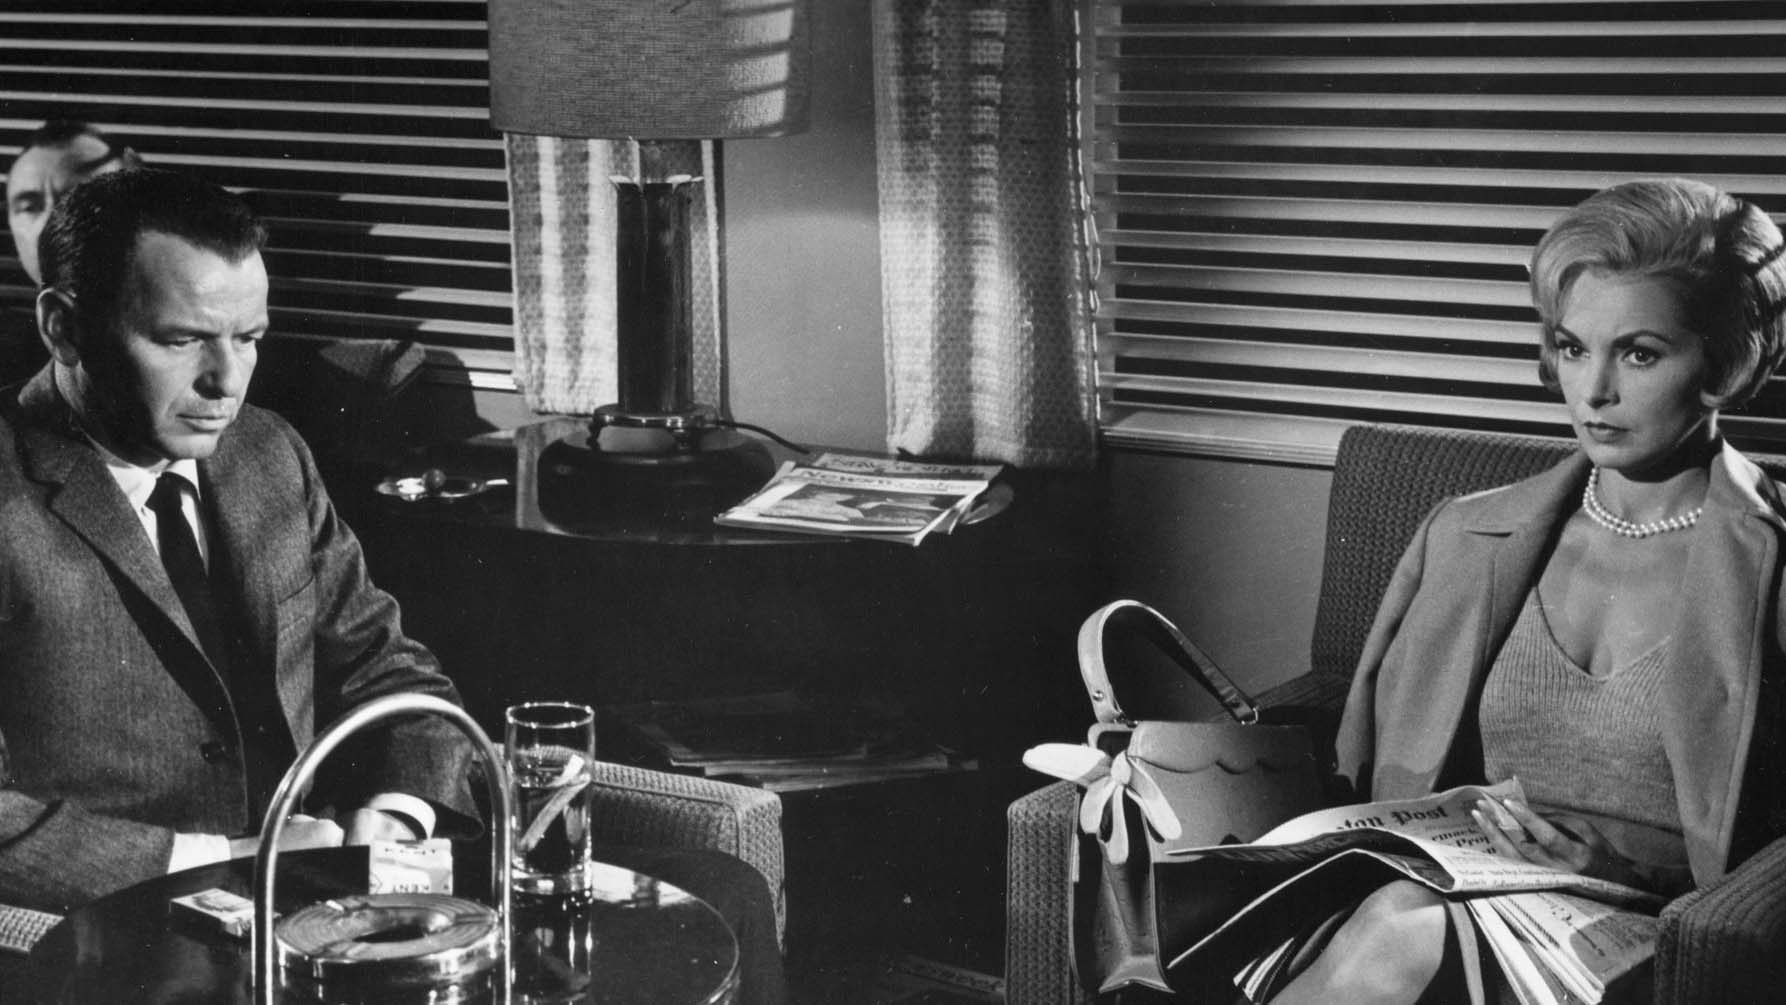 Black and white screen still from The Manchurian Candidate showing a man and a woman sitting in an office with serious expressions.